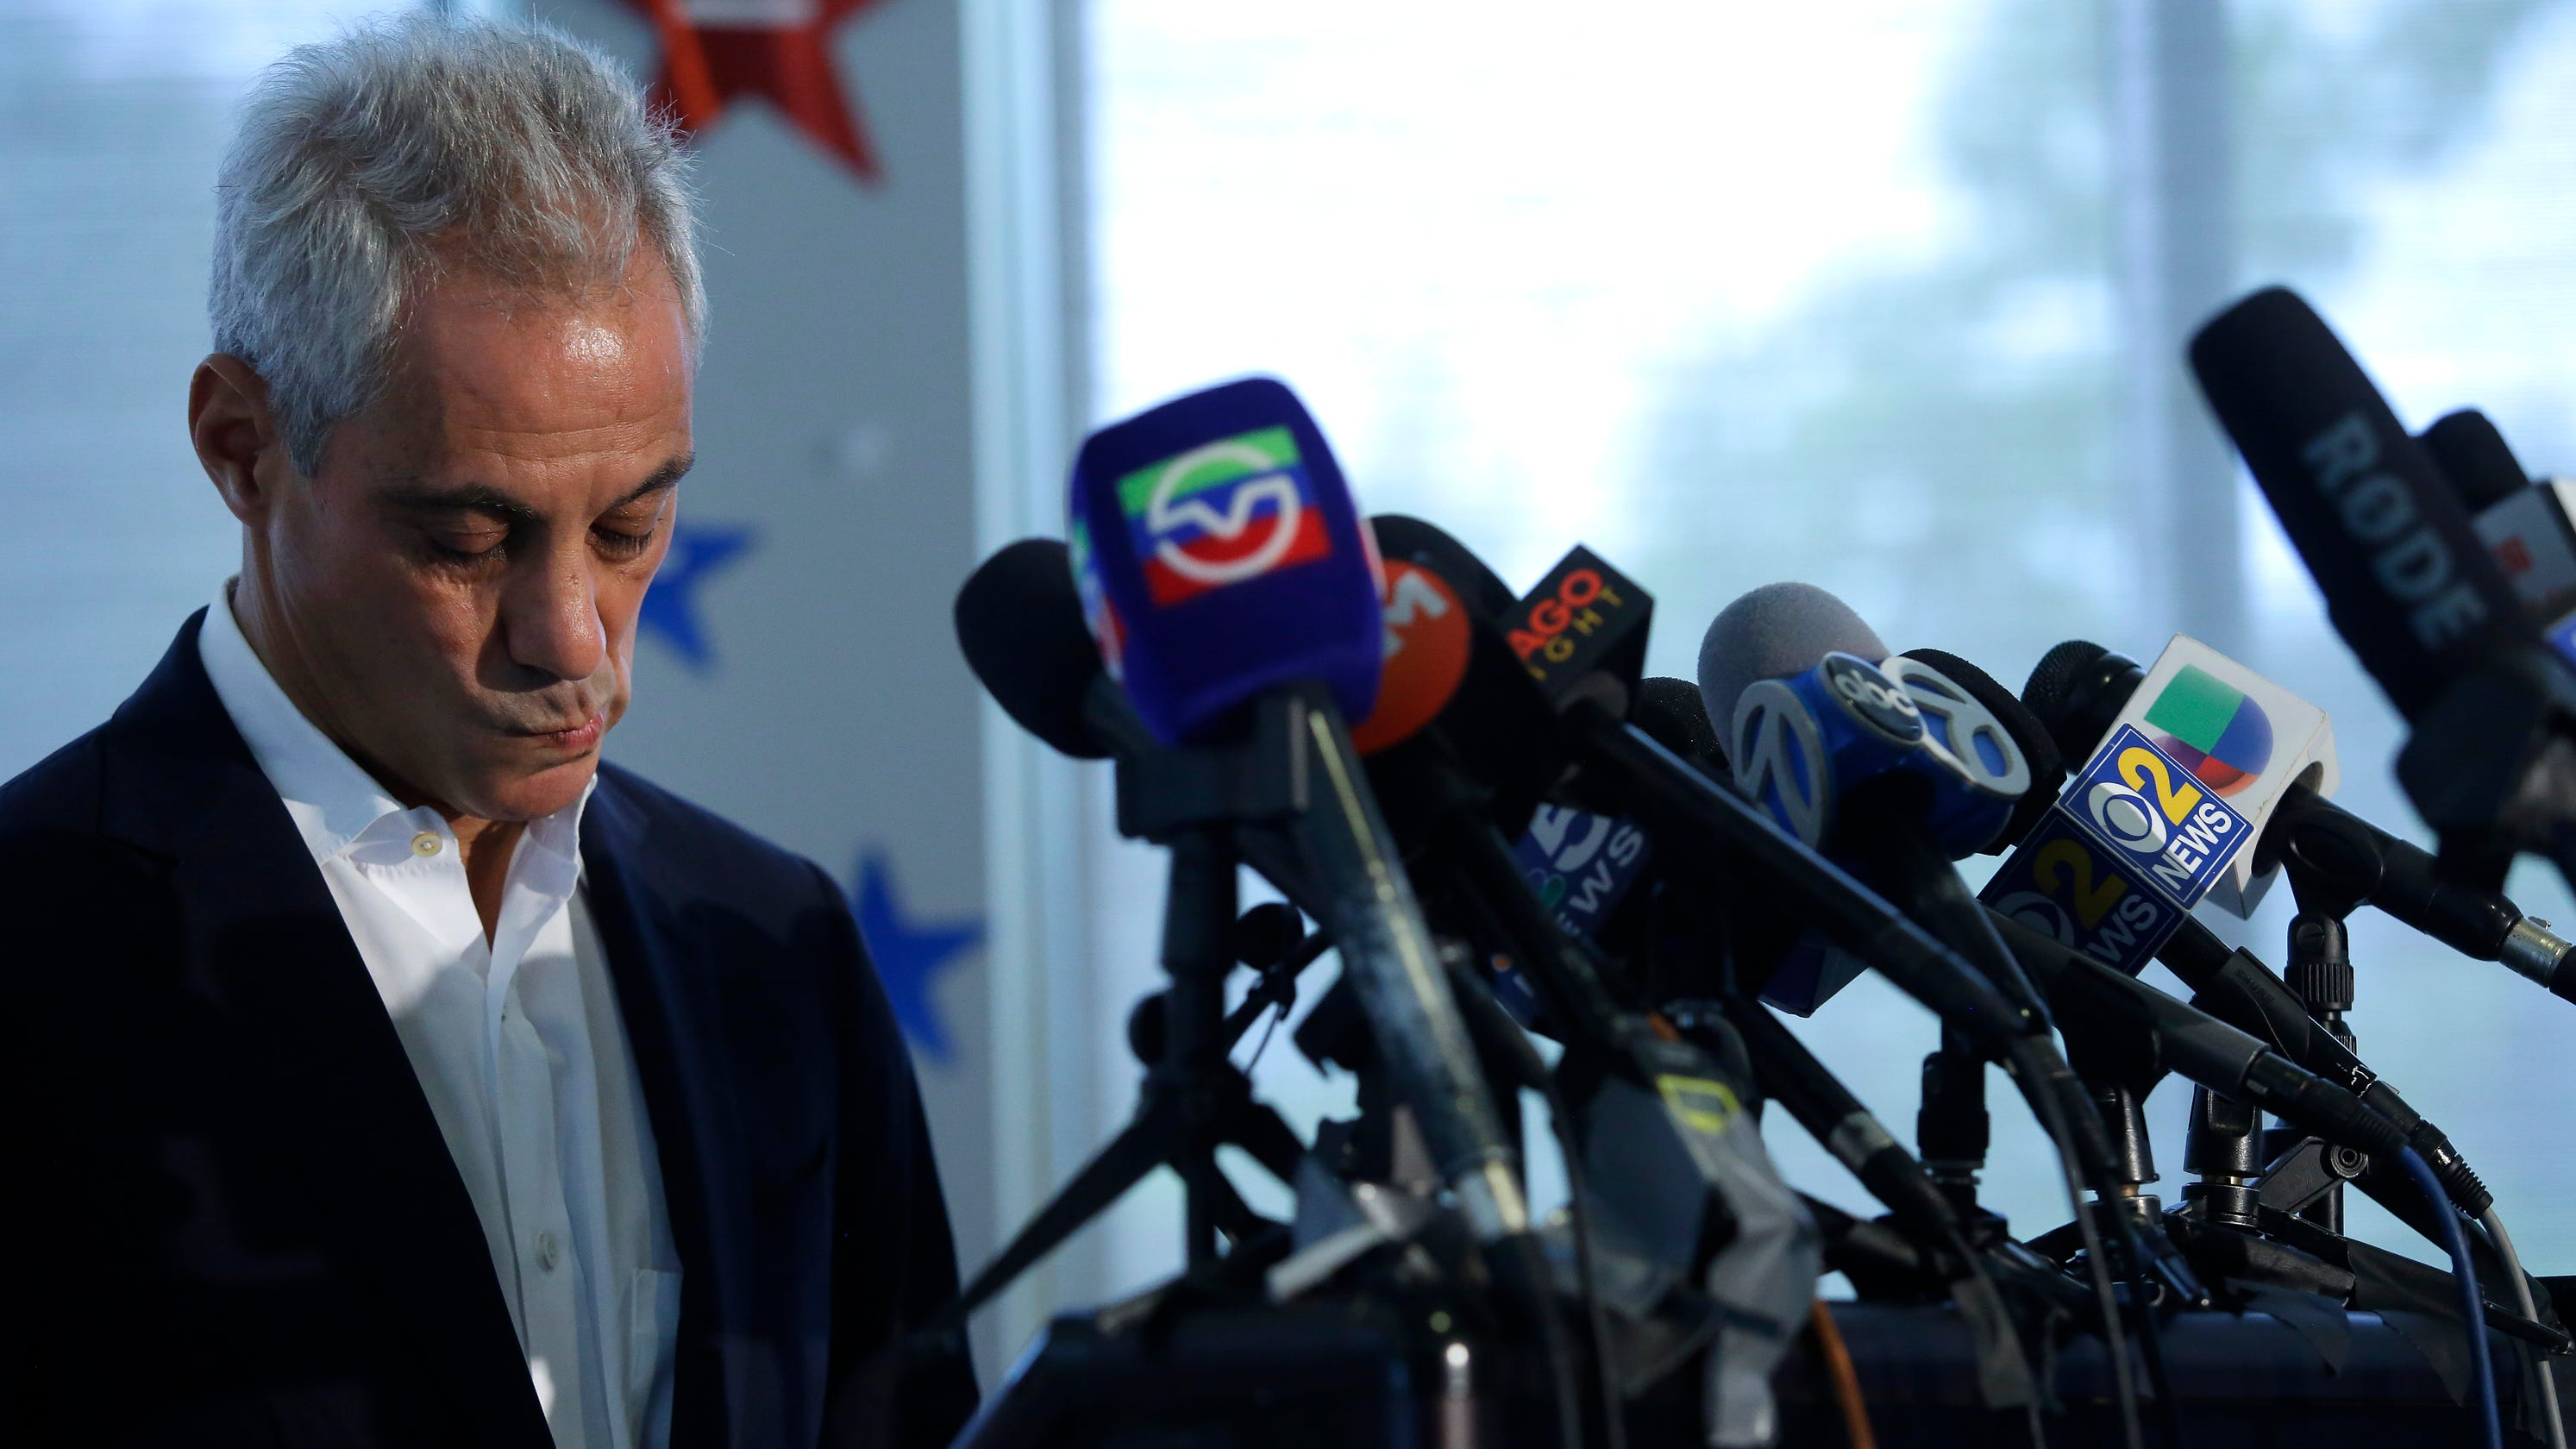 Rahm Emanuel: I won't seek re-election as Chicago Mayor